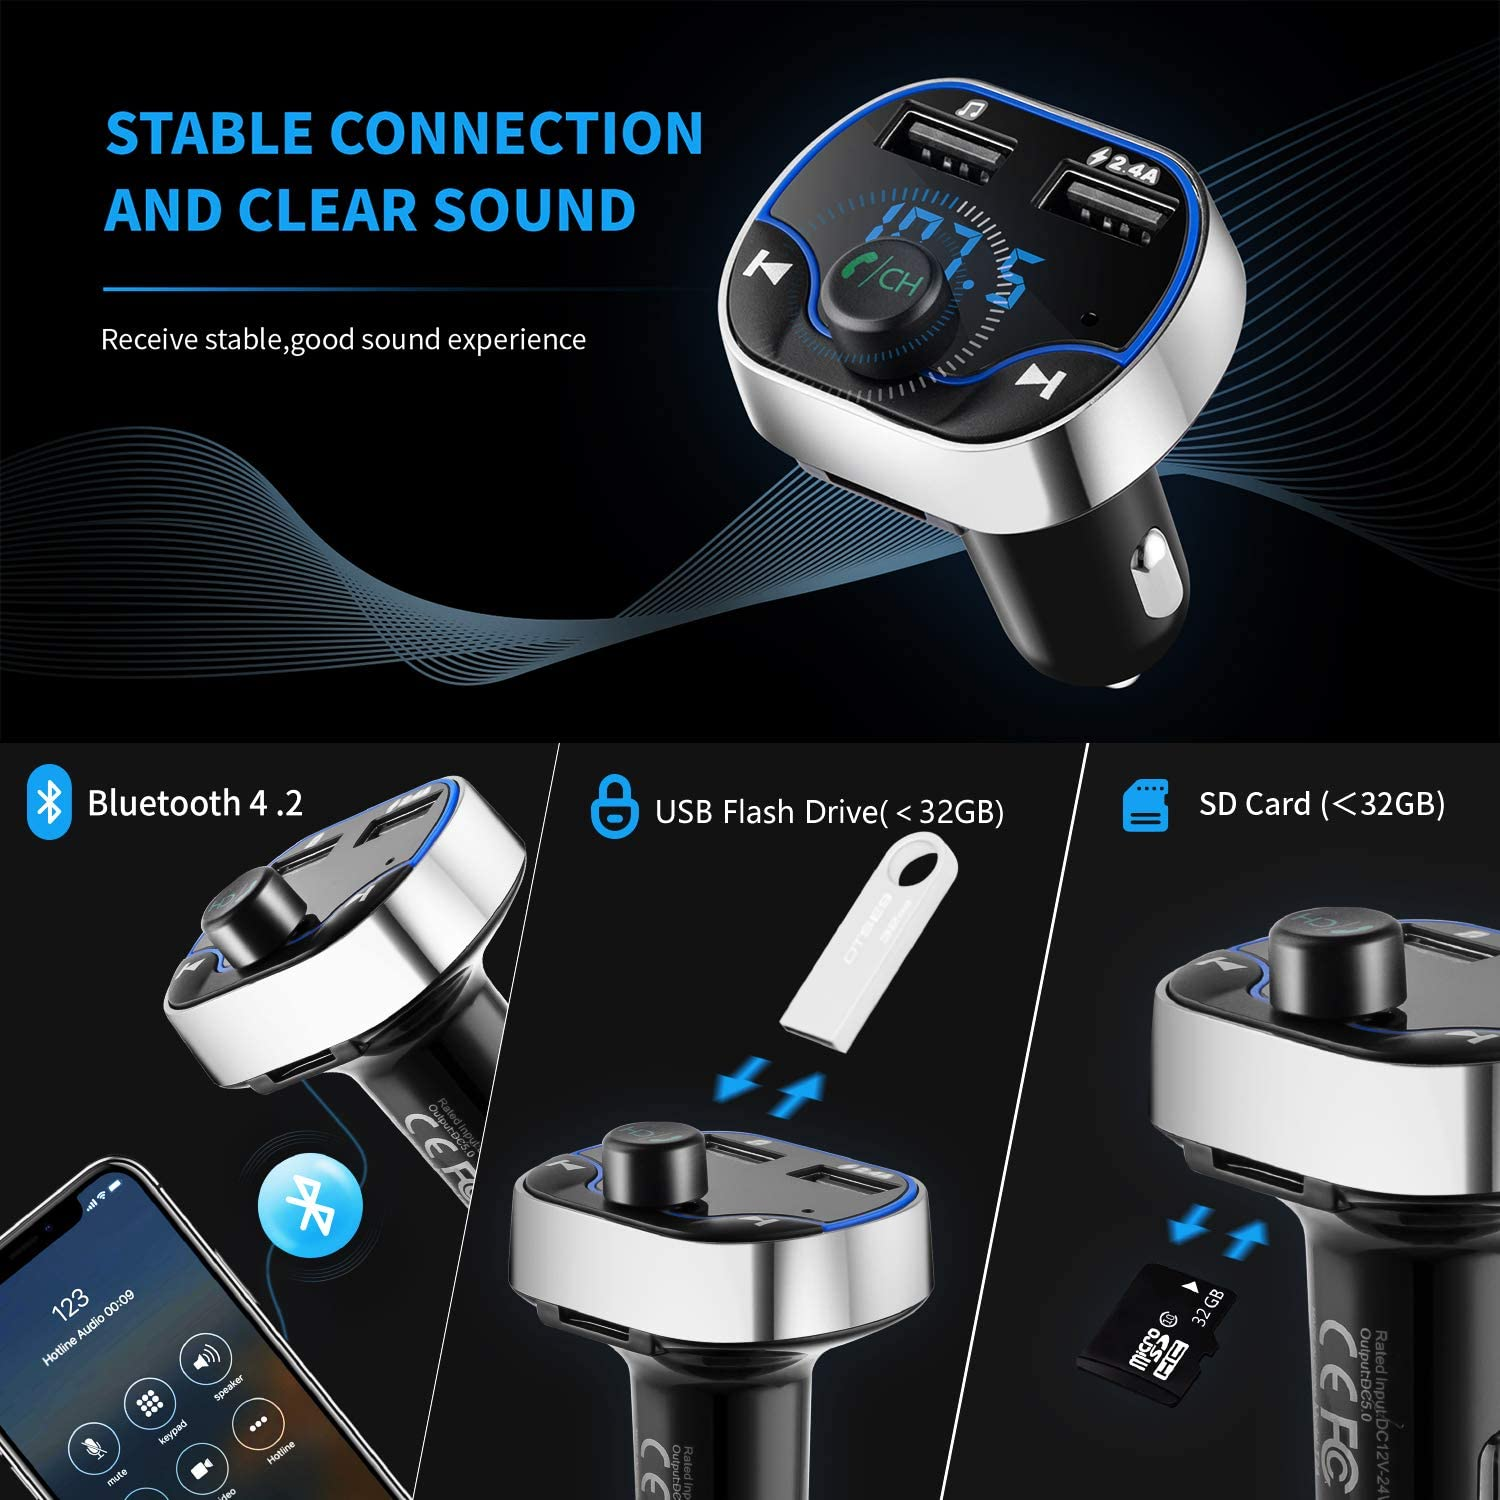 Hotchy Bluetooth Fm Transmitter Car Radio Transmitter Hands Free Car Adapter With Dual Usb Ports Read Micro Sd Card For Ios And Android Bluetooth Devices Navigation Car Hifi